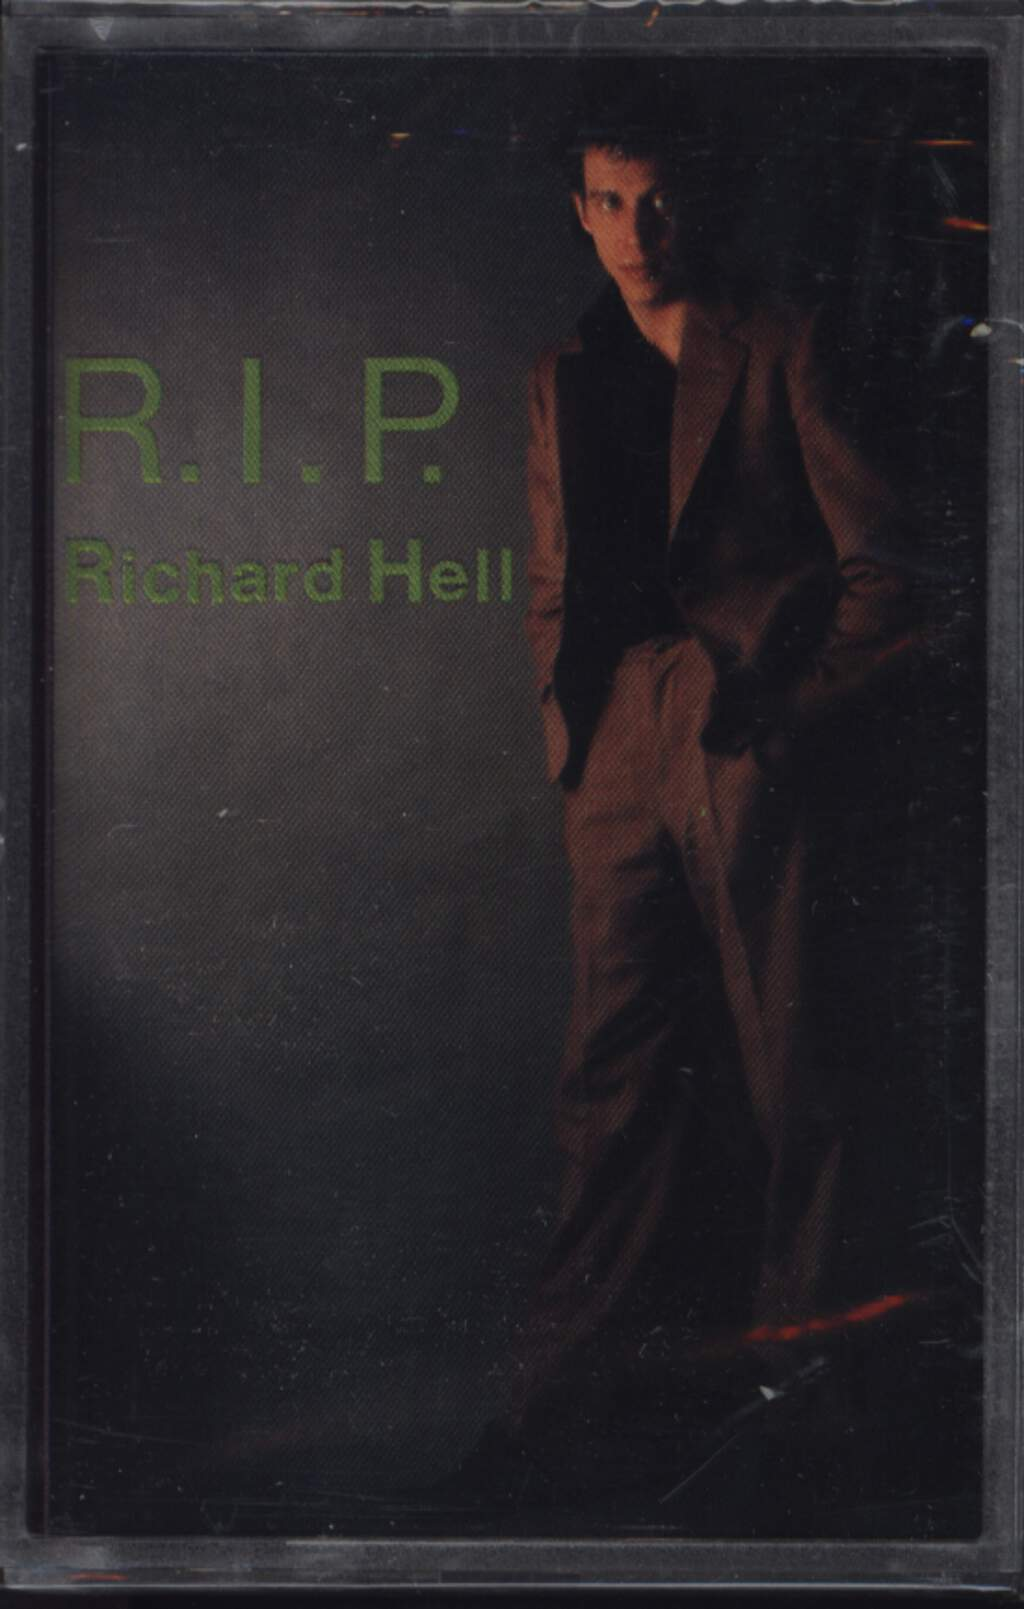 Richard Hell: R.I.P., Compact Cassette